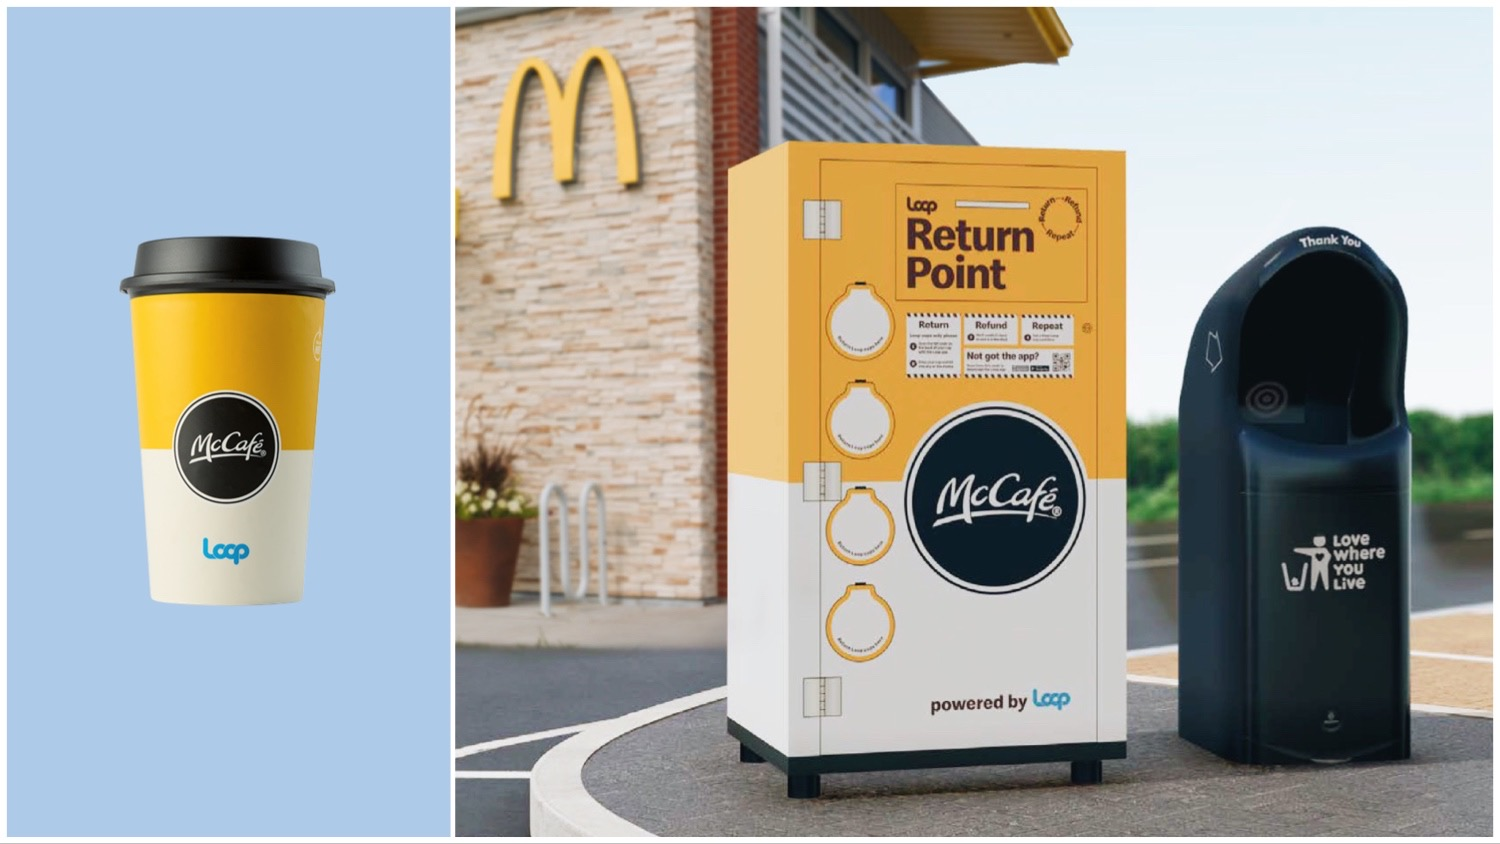 Split image featuring a close up of McDonald's reusable coffee cup (left) and the McDonald's return point (right).